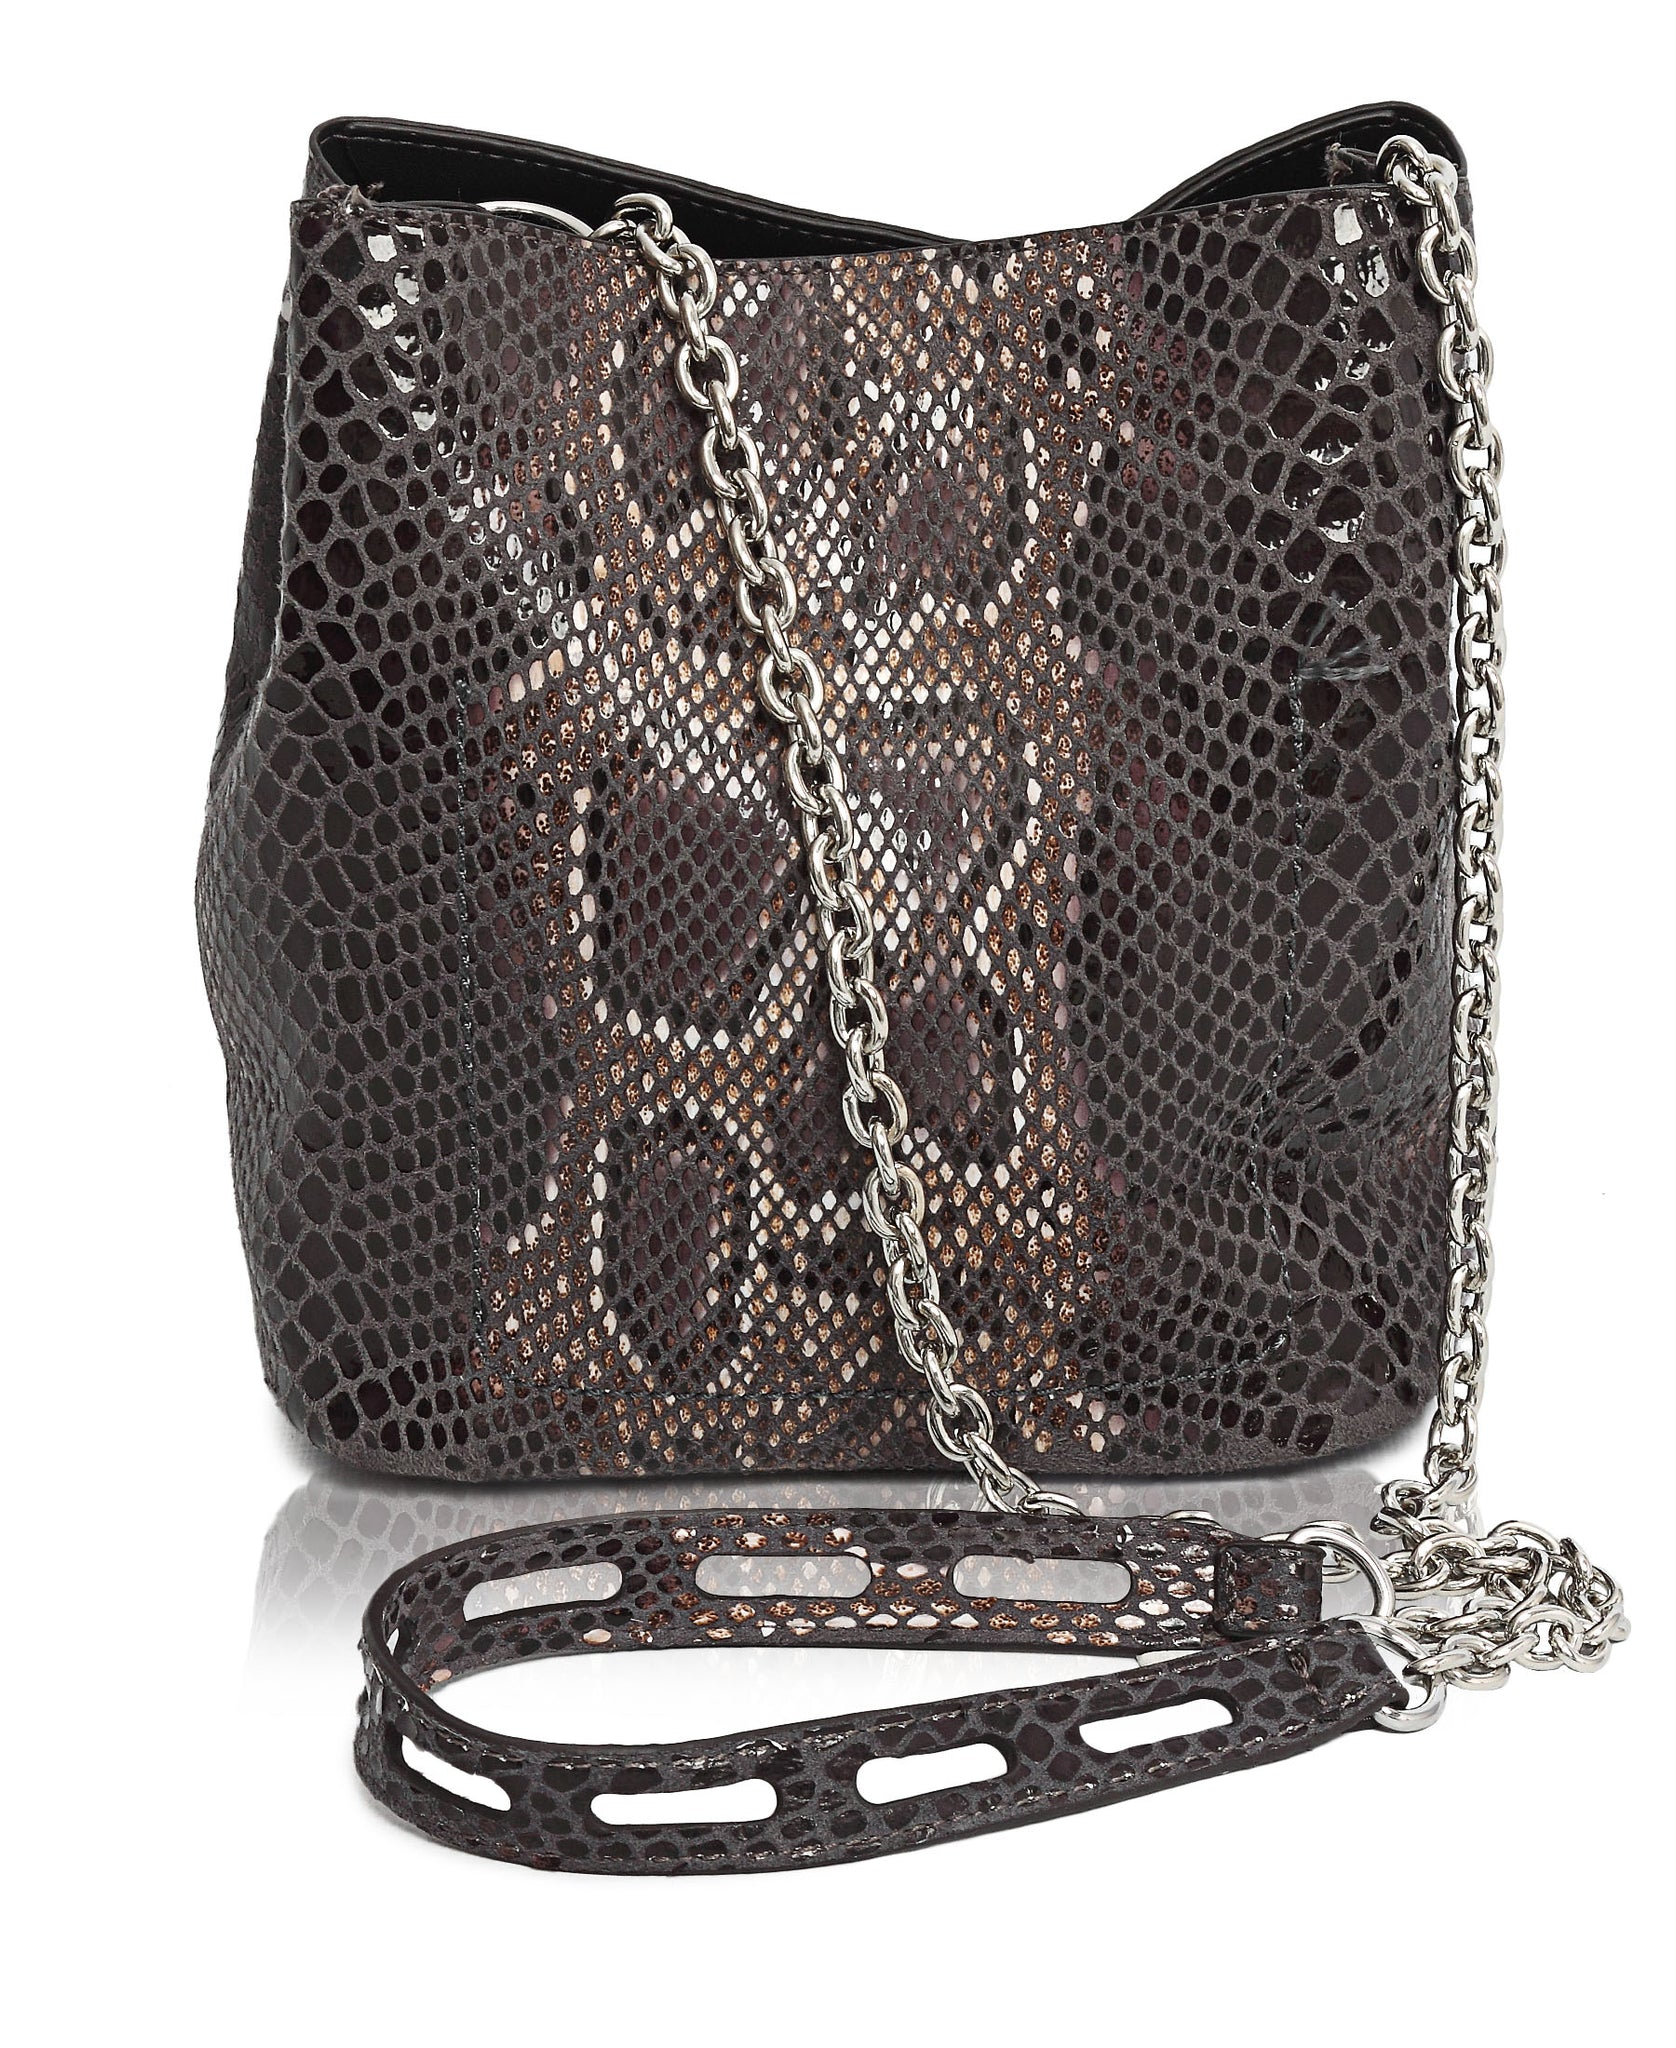 Bucket Bag - Black